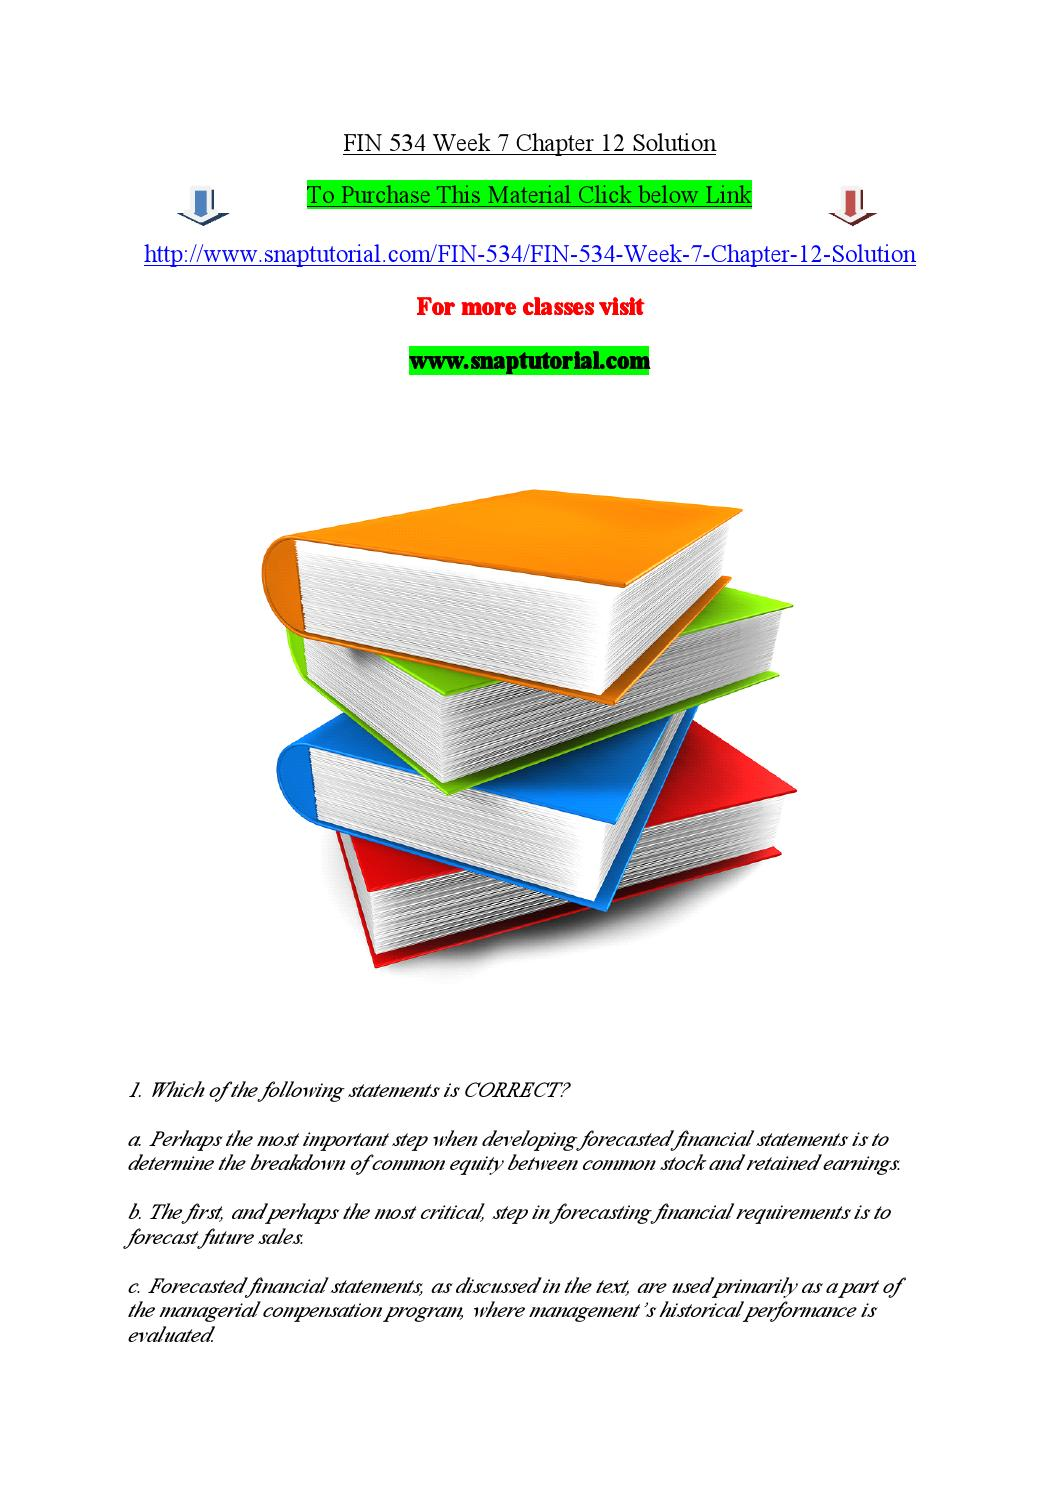 Fin 534 week 7 chapter 12 solution by madhu50 - issuu